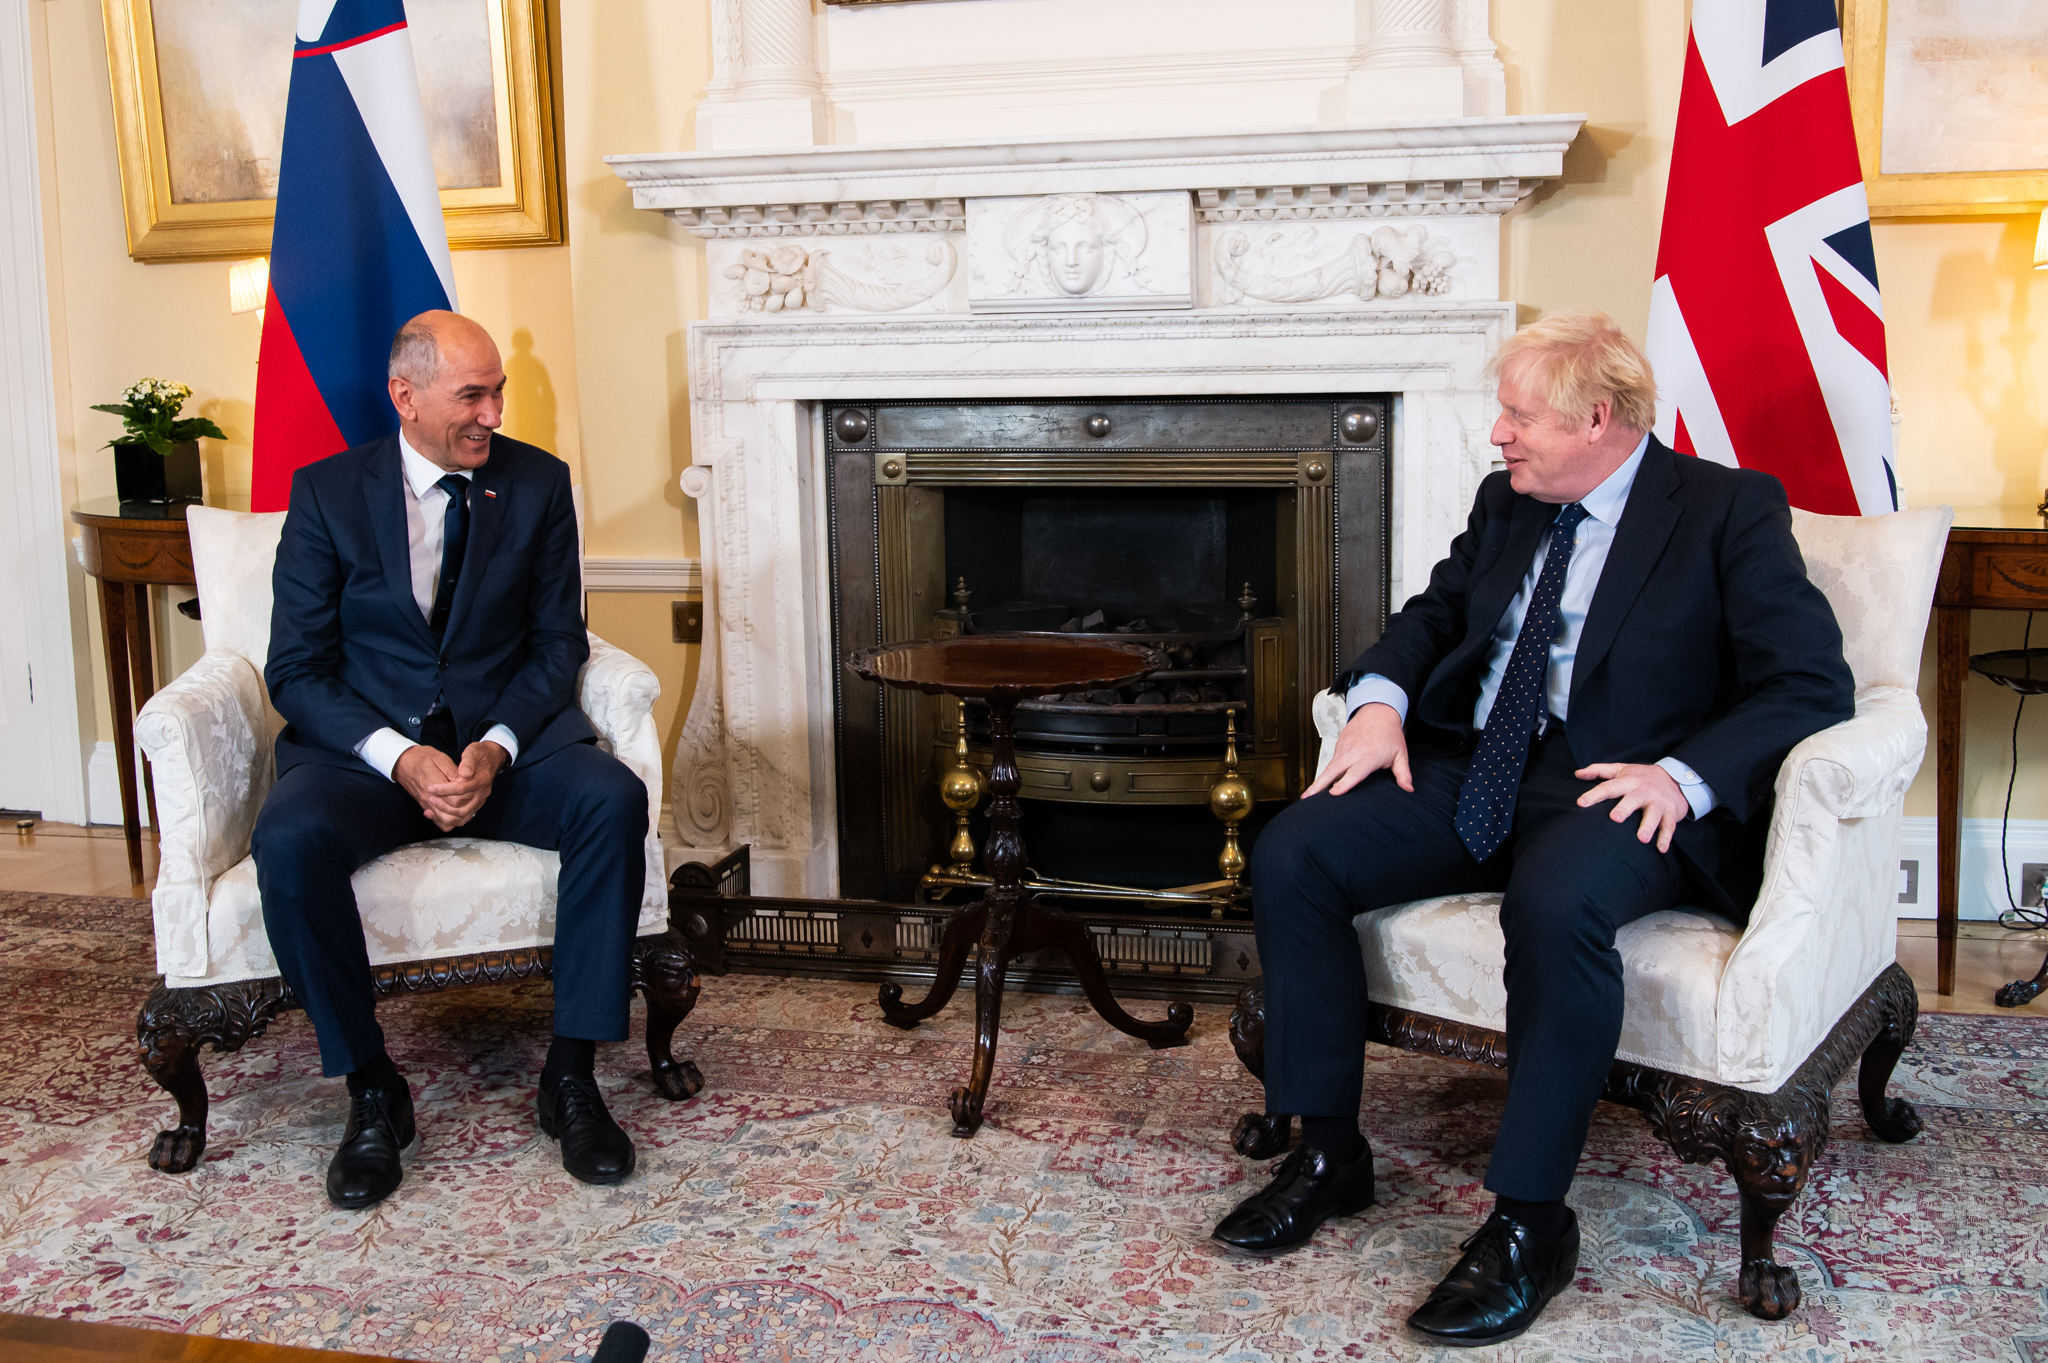 Slovenia: Janša met with Johnson in London to talk about relations between Slovenia and the EU with the UK